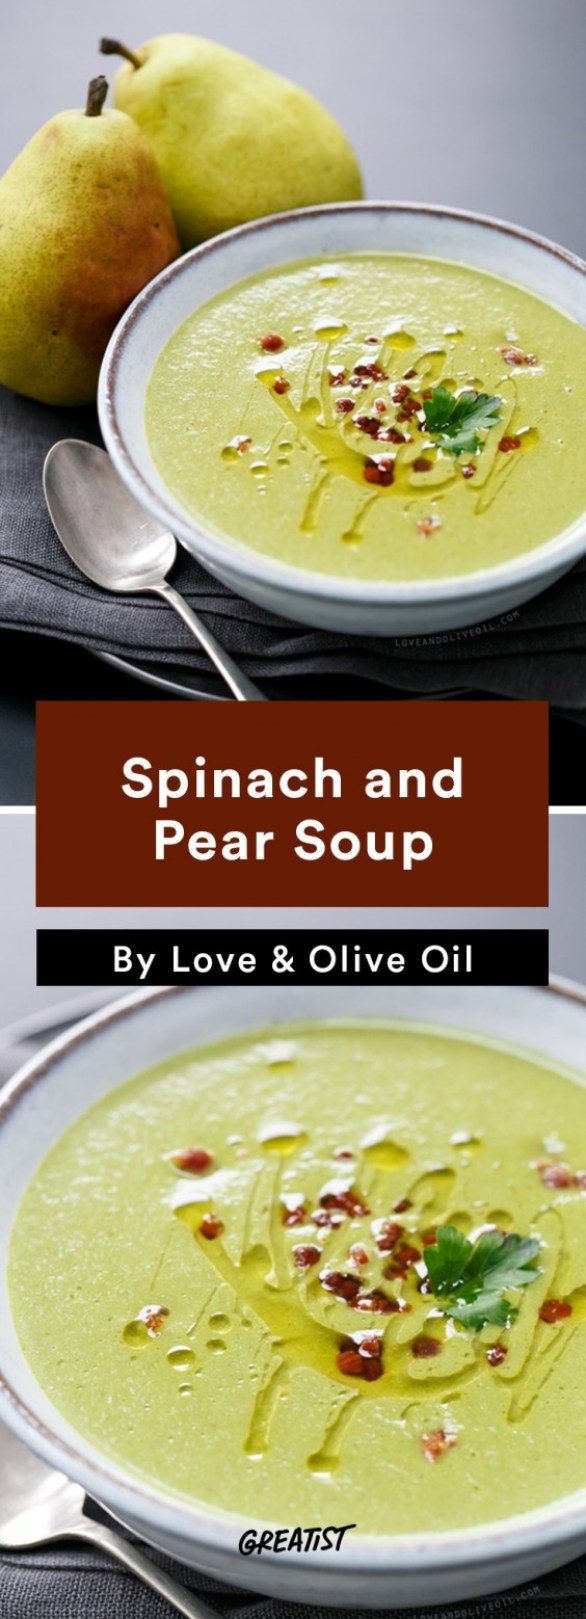 Spinach and Pear Soup